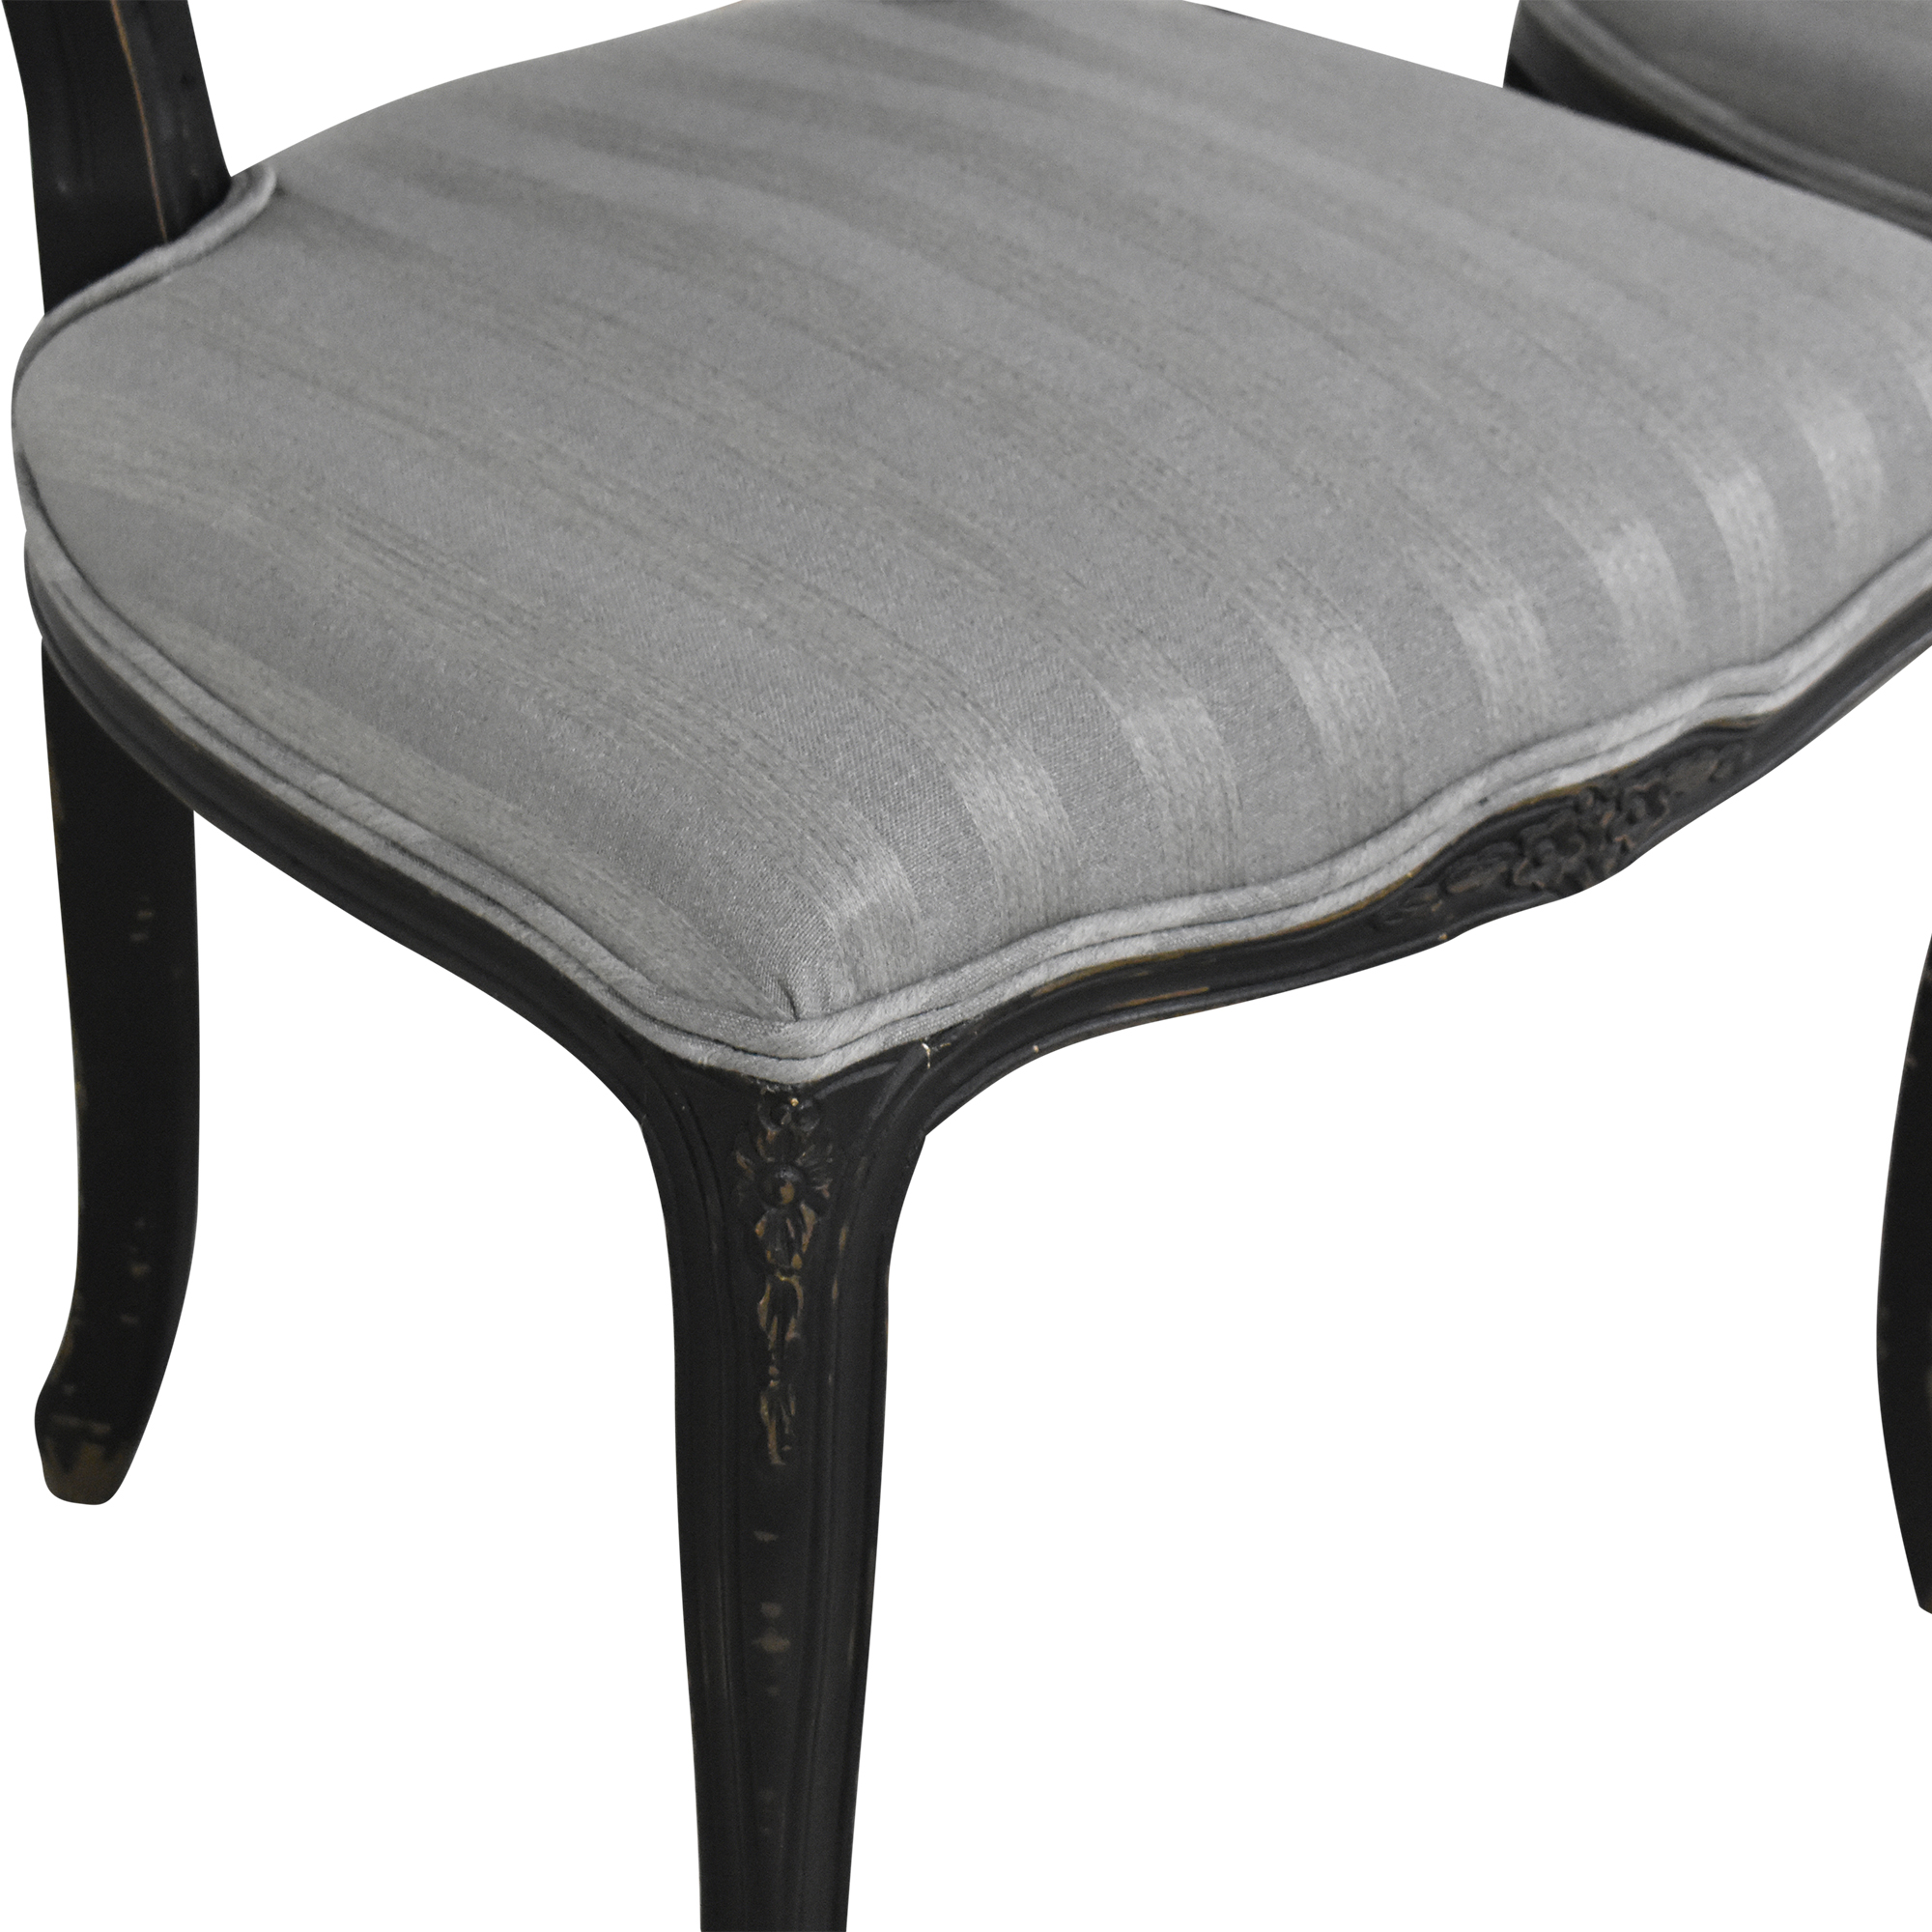 Four Hands Orleans Dining Chairs sale